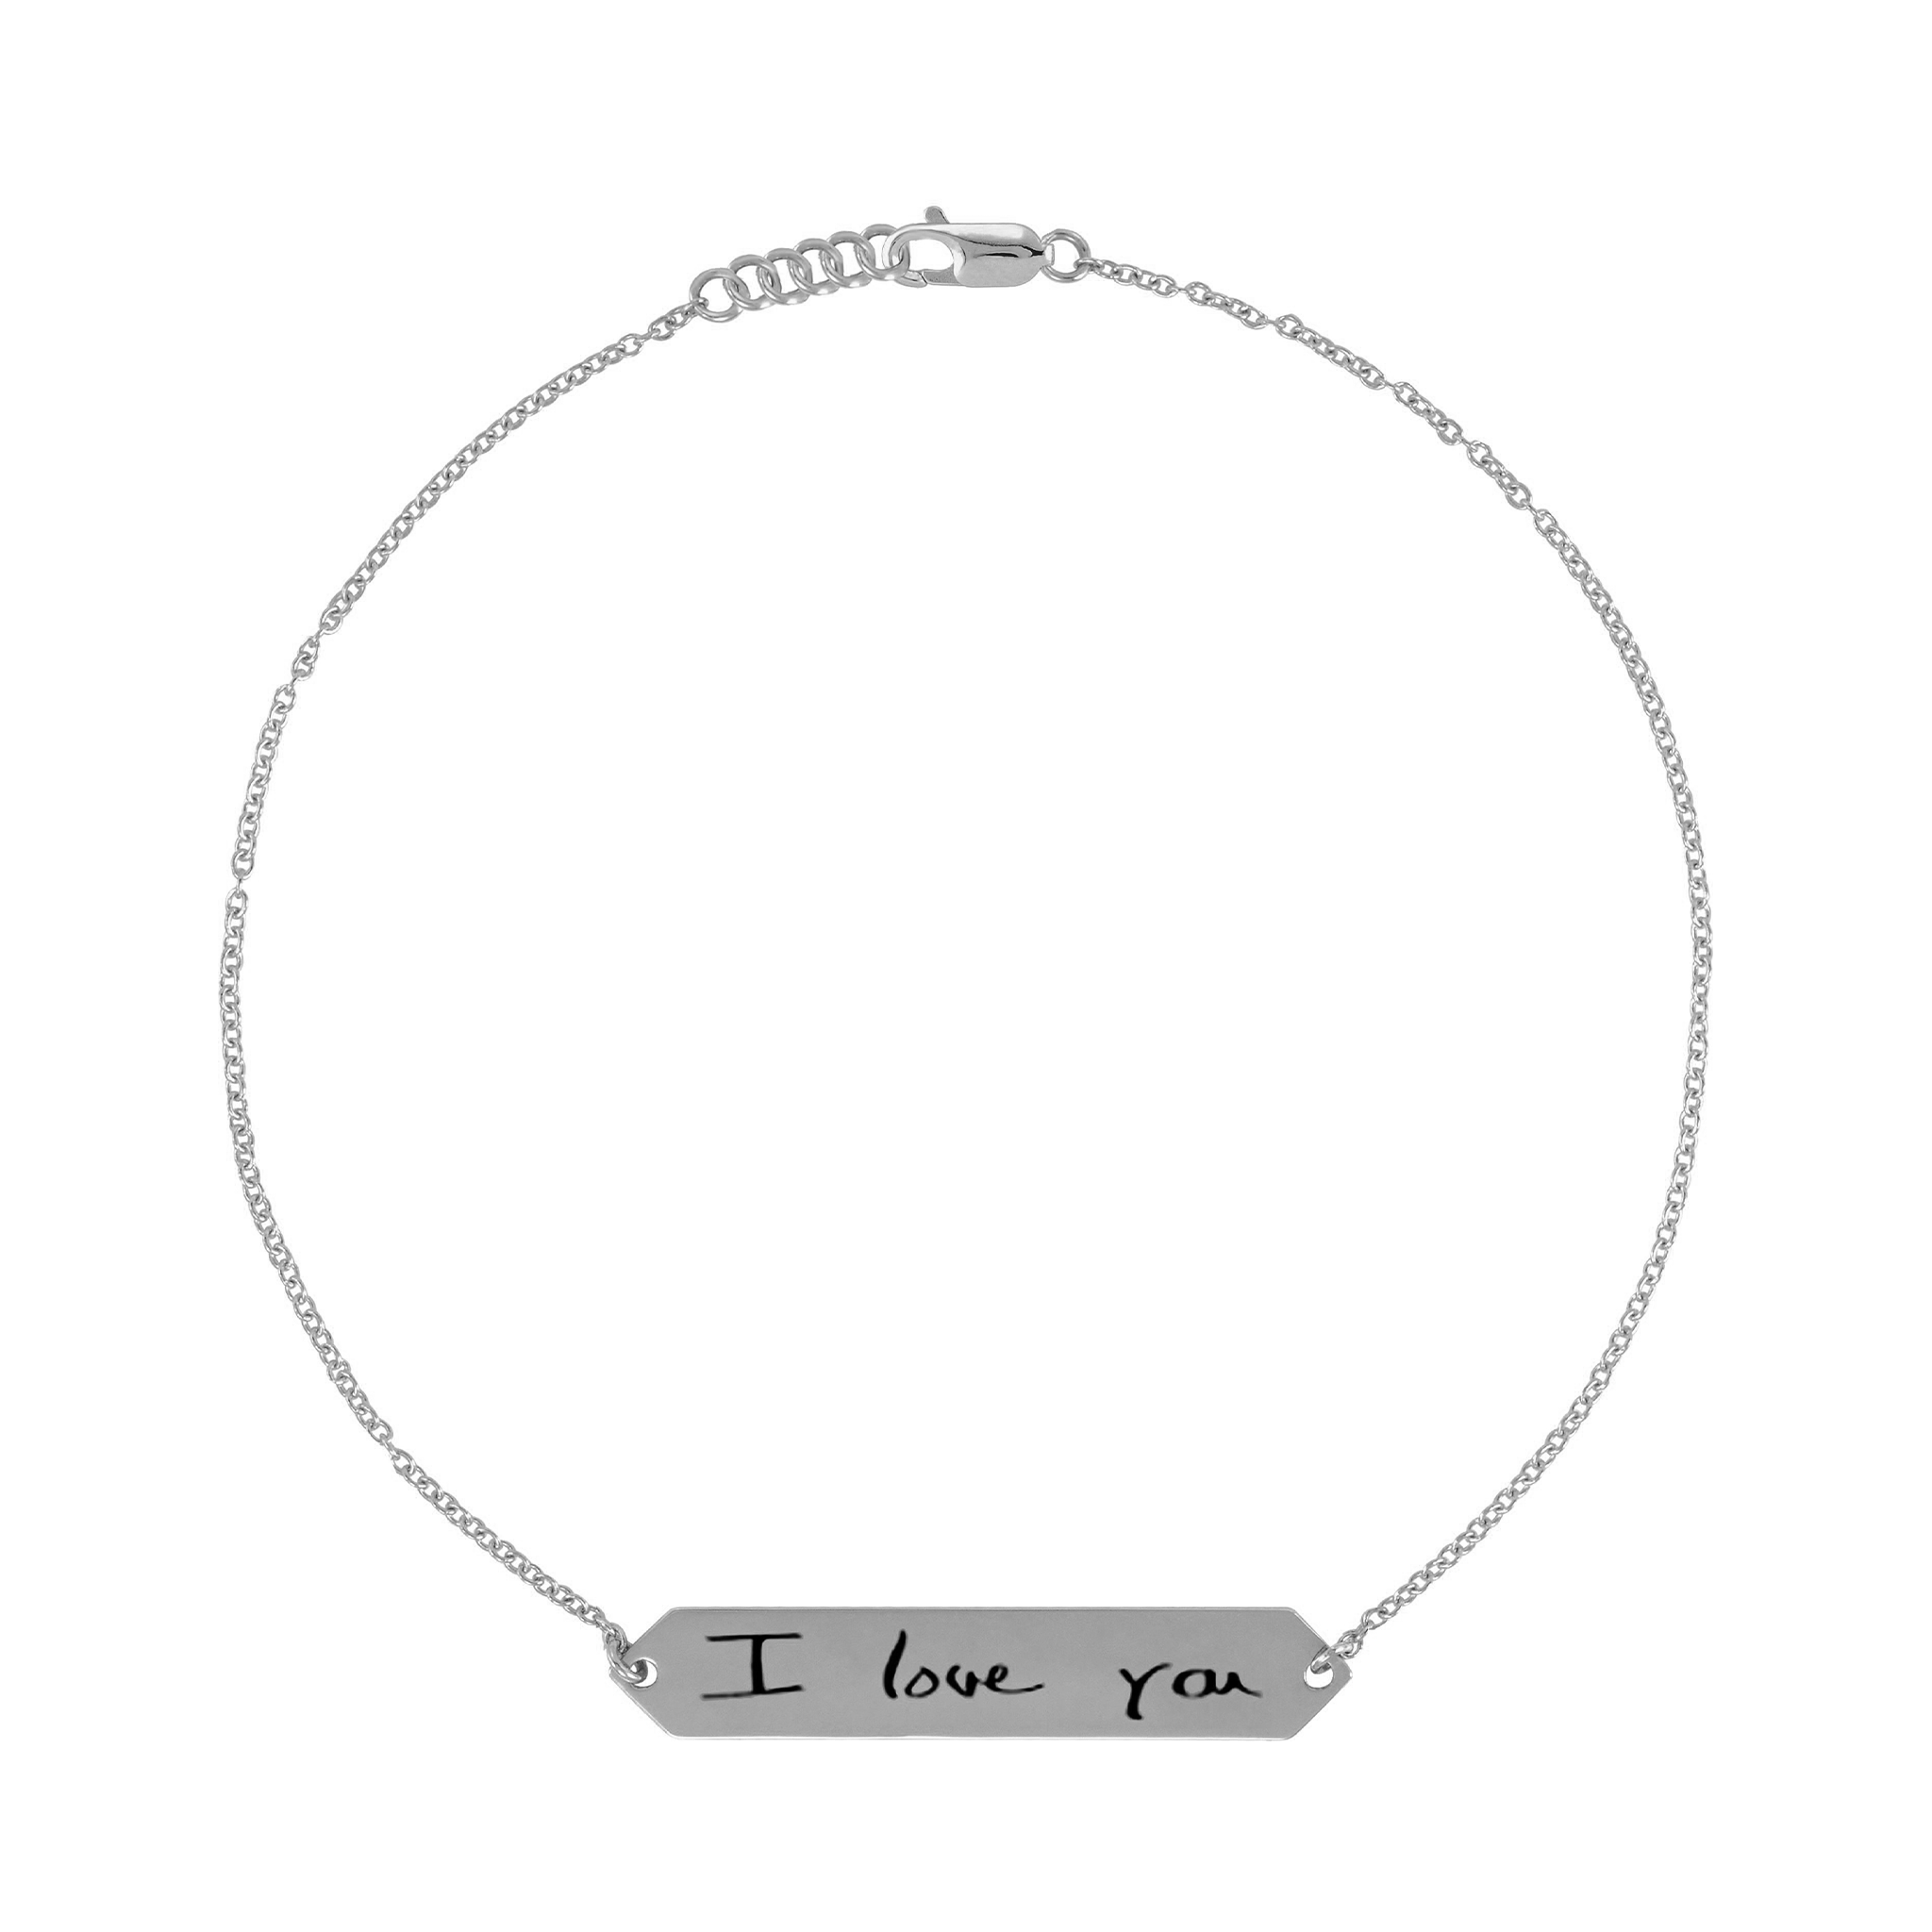 Handwriting Engraved Bar Bracelet